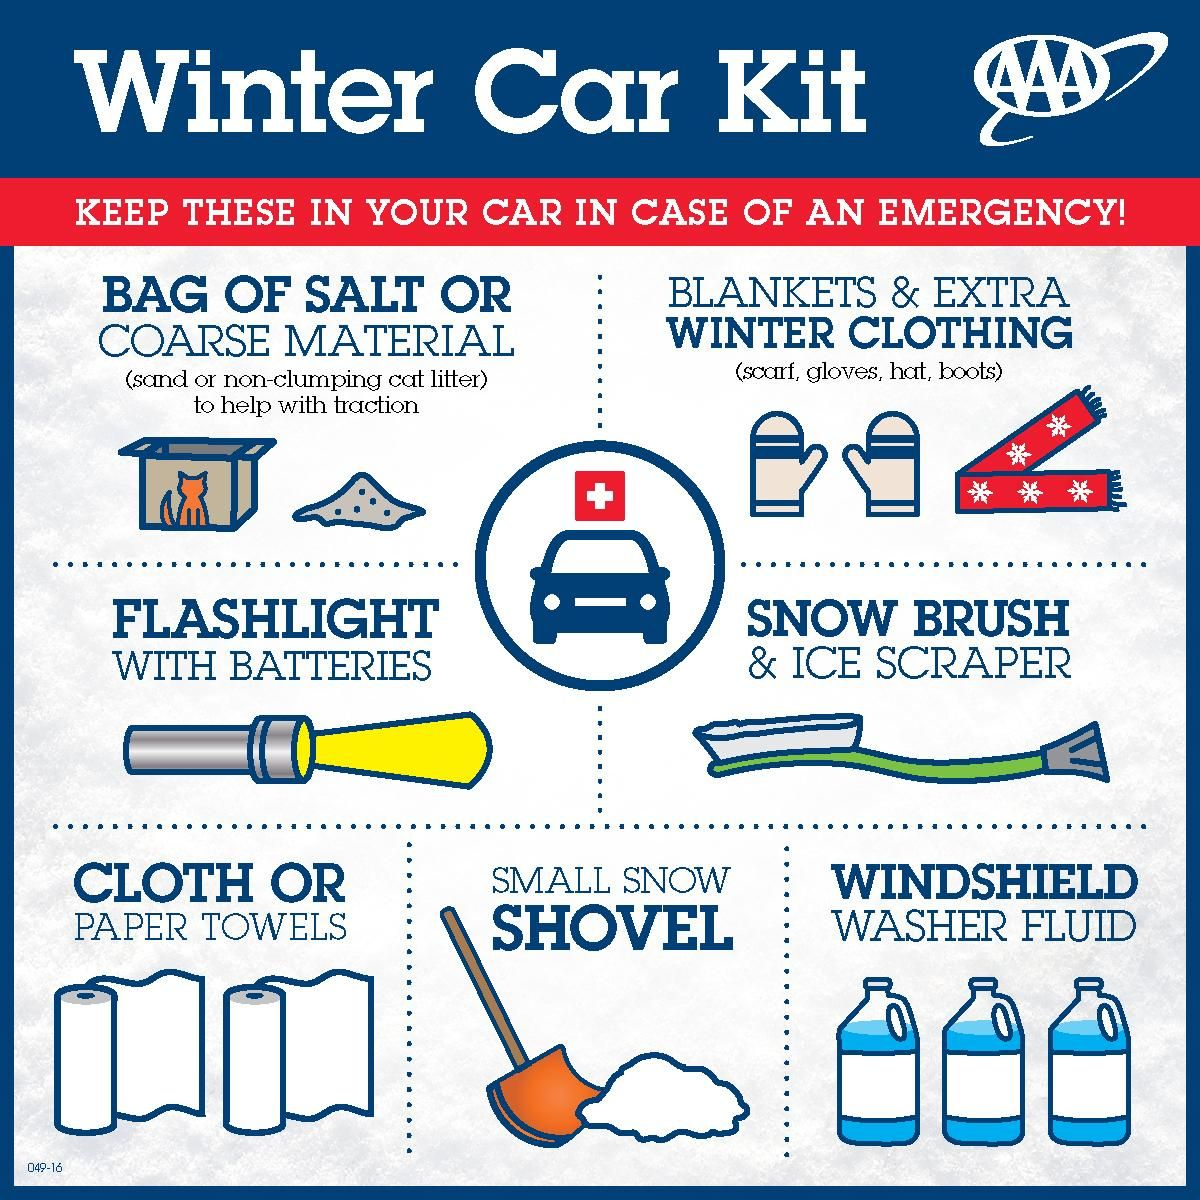 Winter Car Kit from AAA - Keep these items in your car in ...